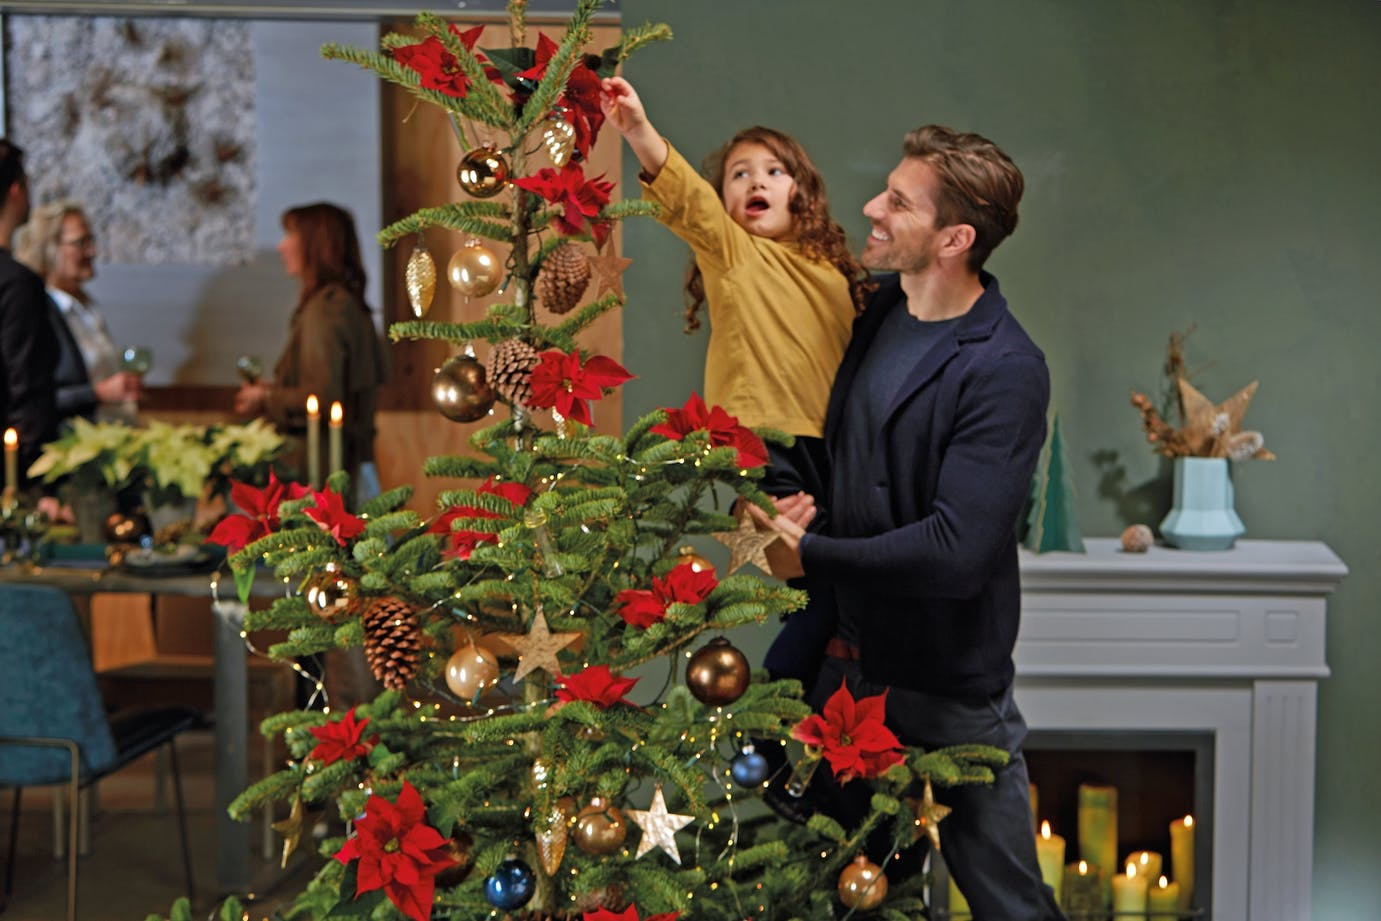 Christmastime: Childhood dreams come true